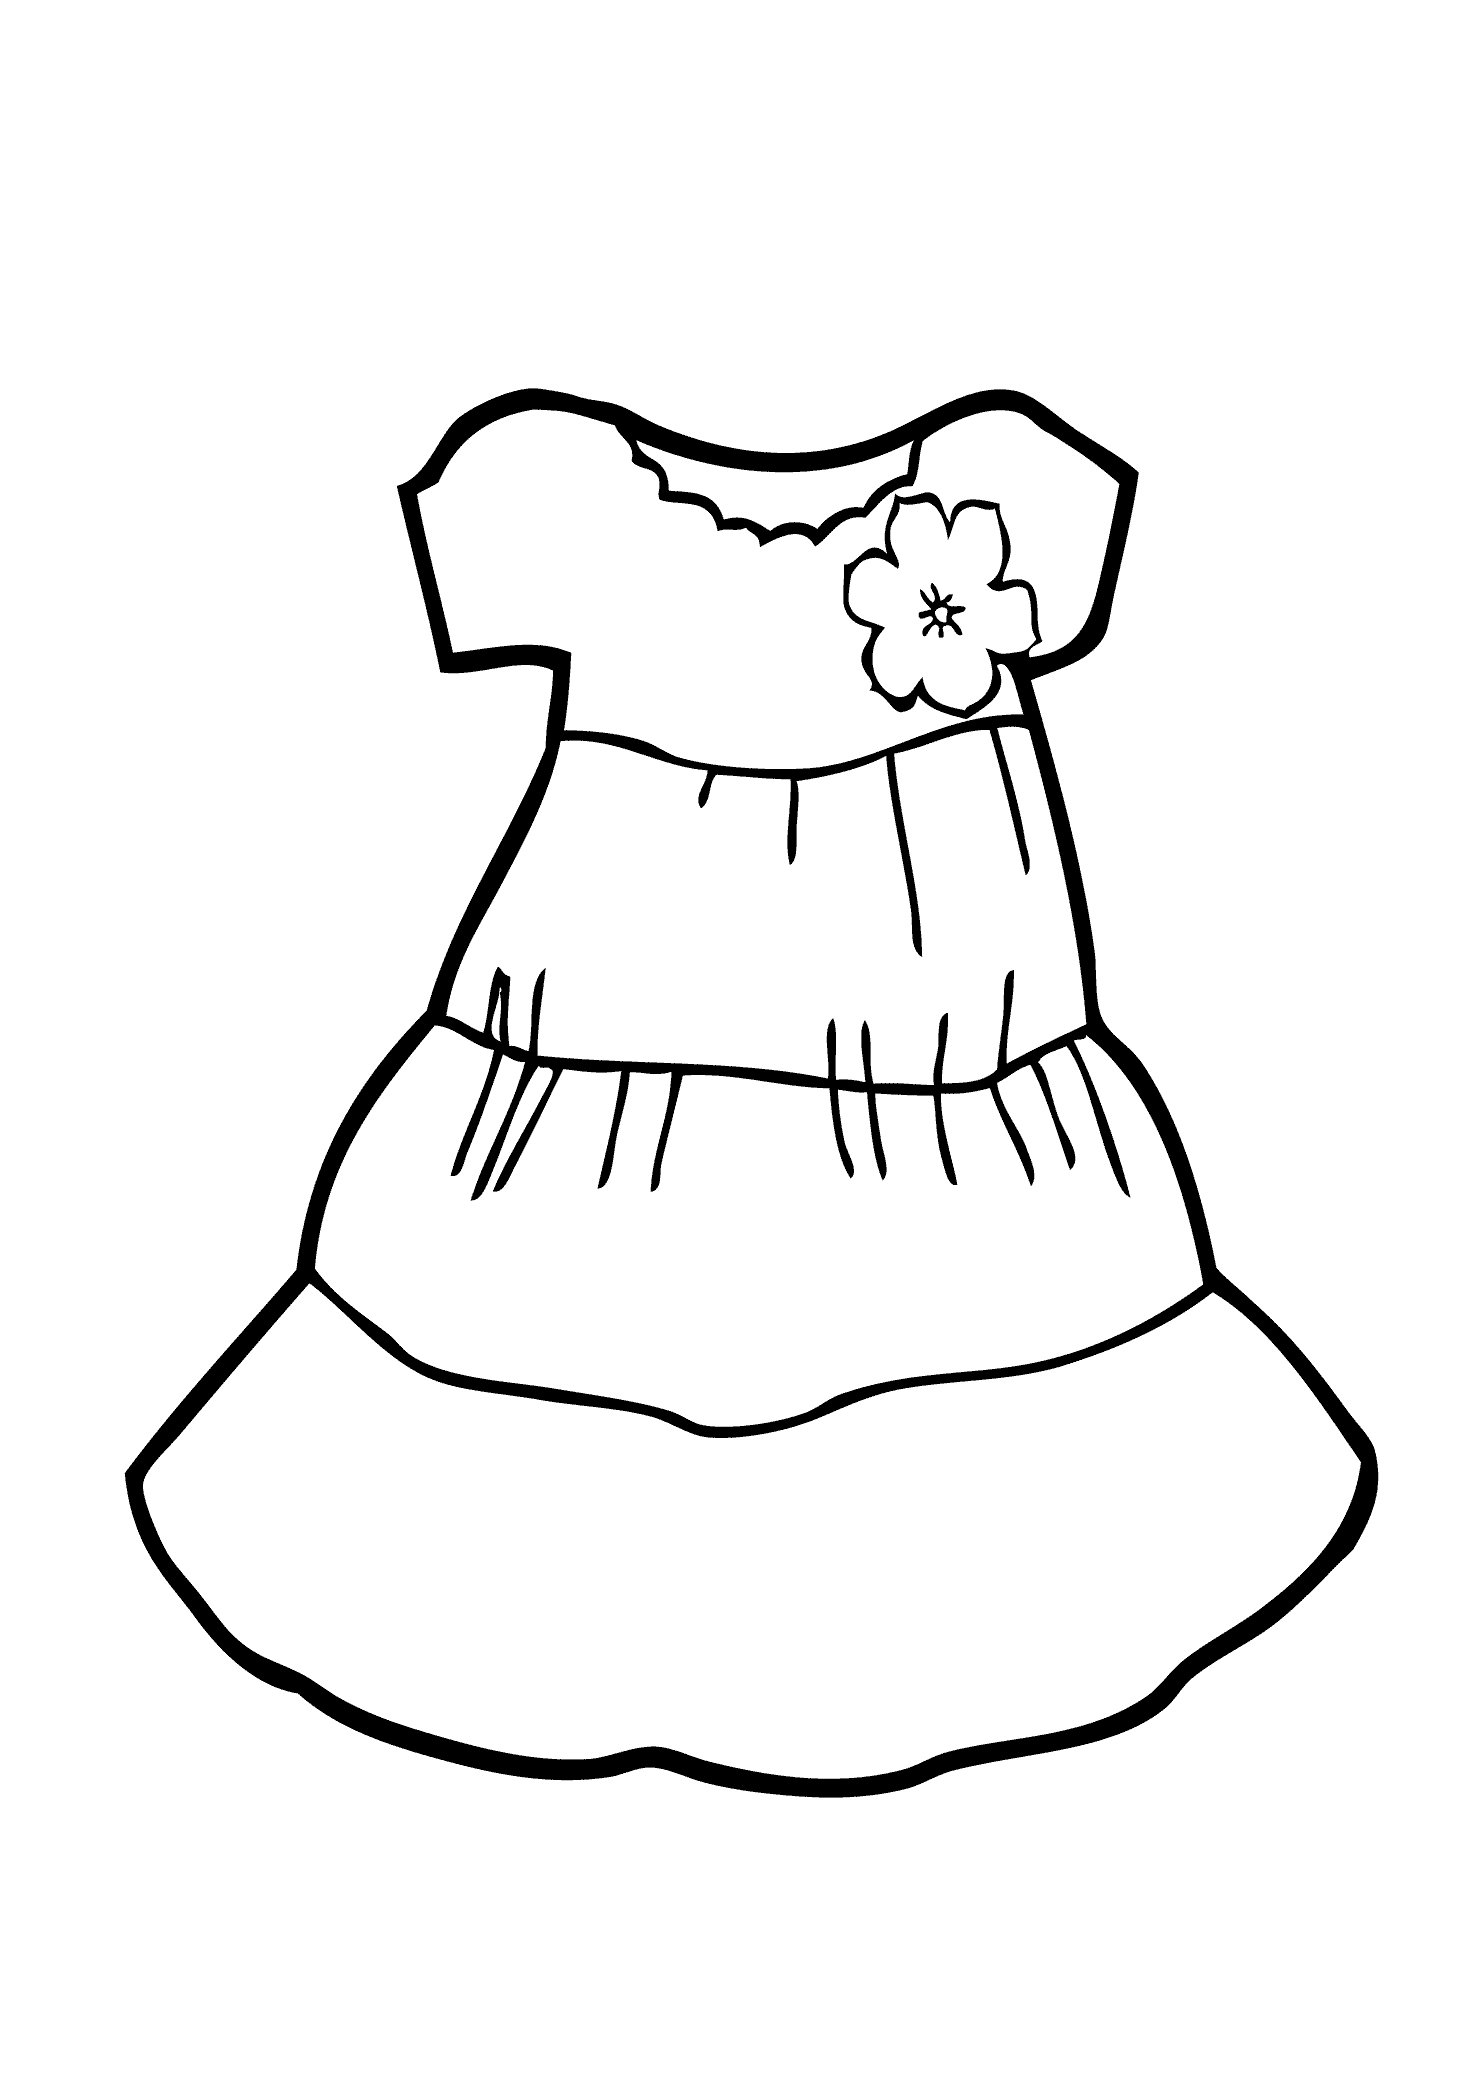 Dress Coloring Pages - Light Dress Coloring Page for Girls Printable Free